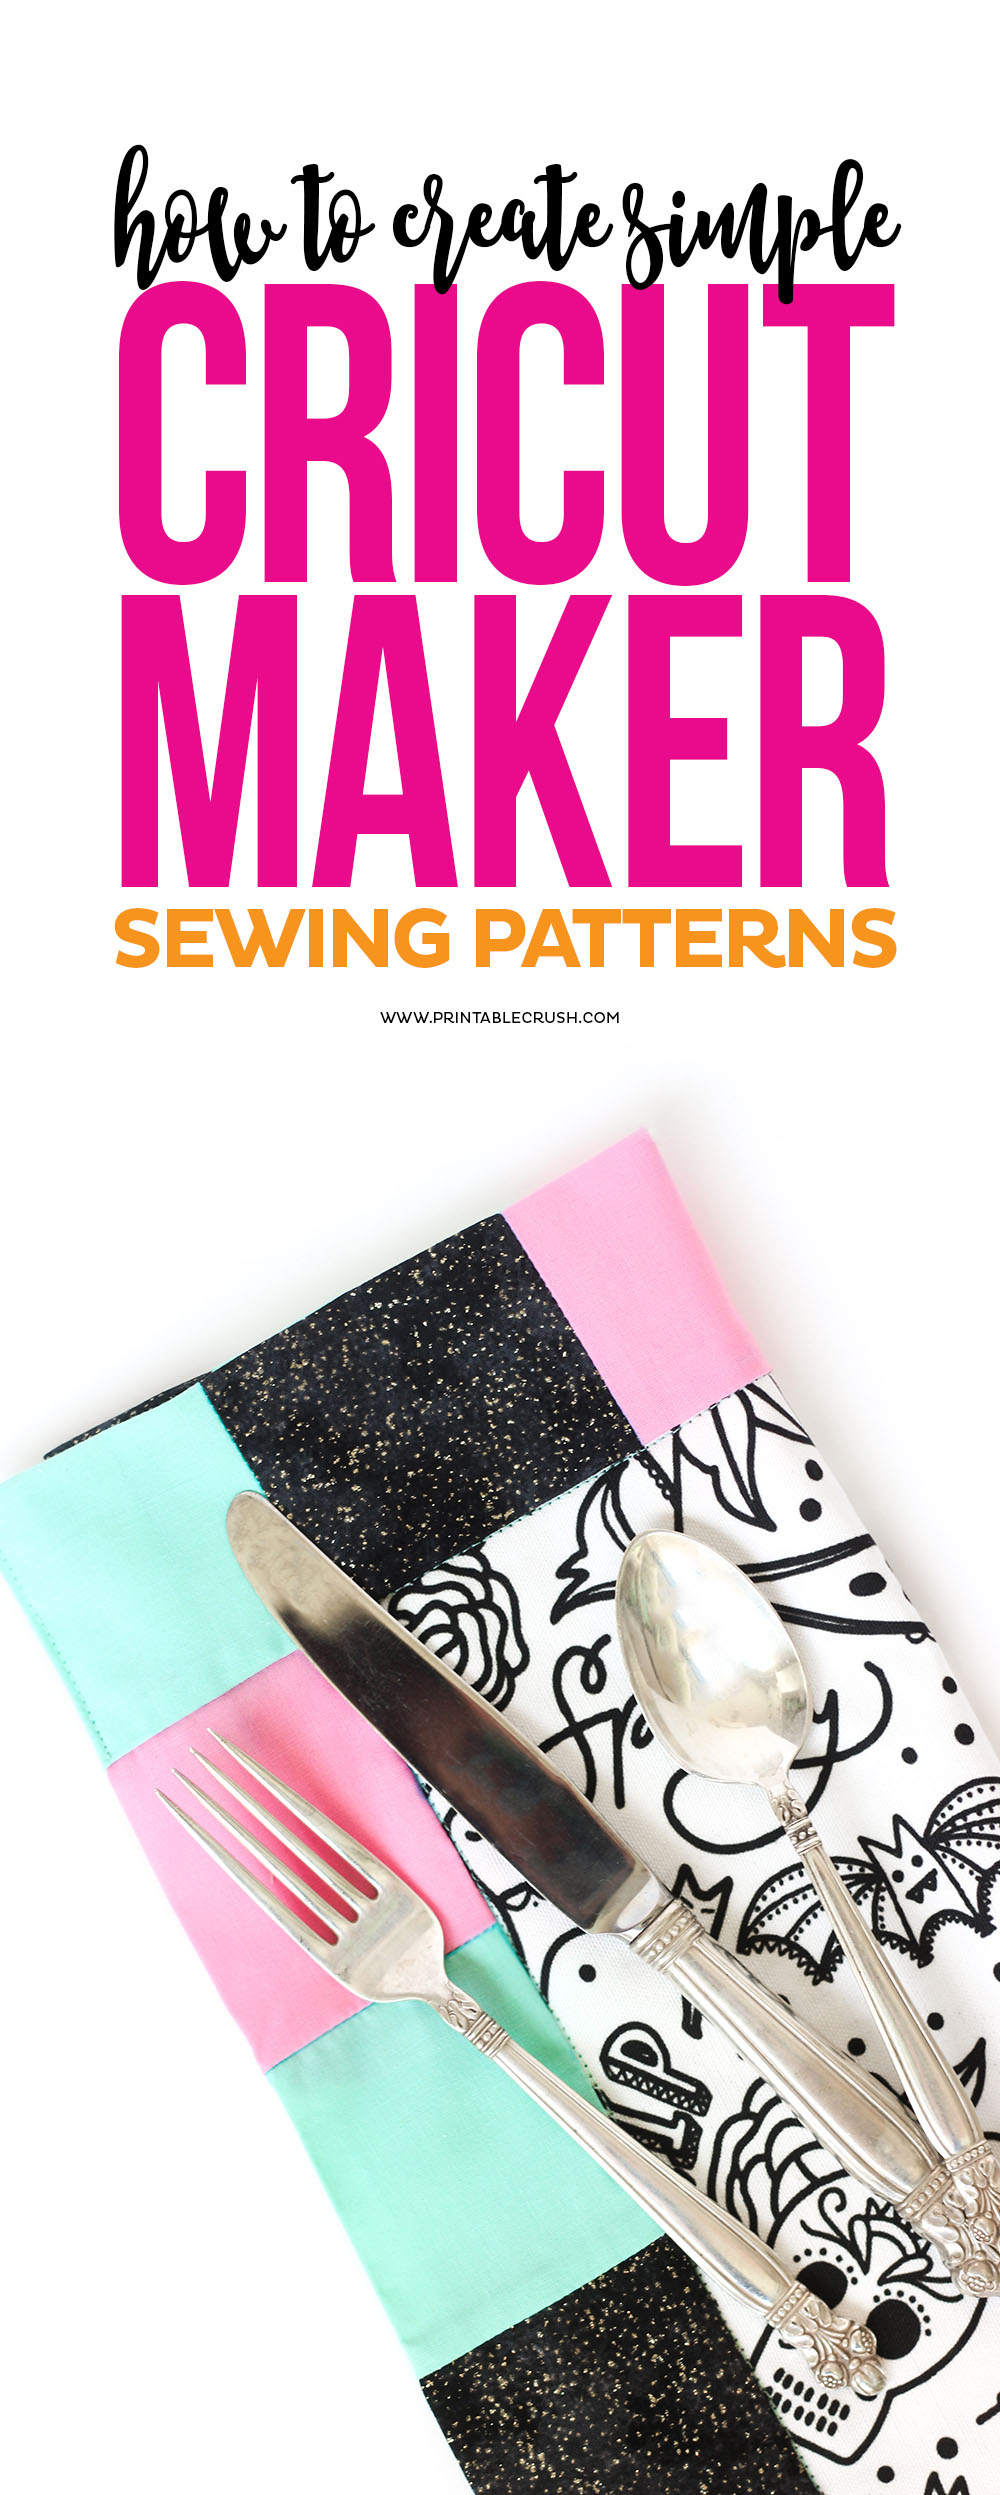 Cricut Design Space has many sewing patterns to choose from, but you can also learn how to create a Simple Cricut Maker Sewing Pattern with this tutorial!